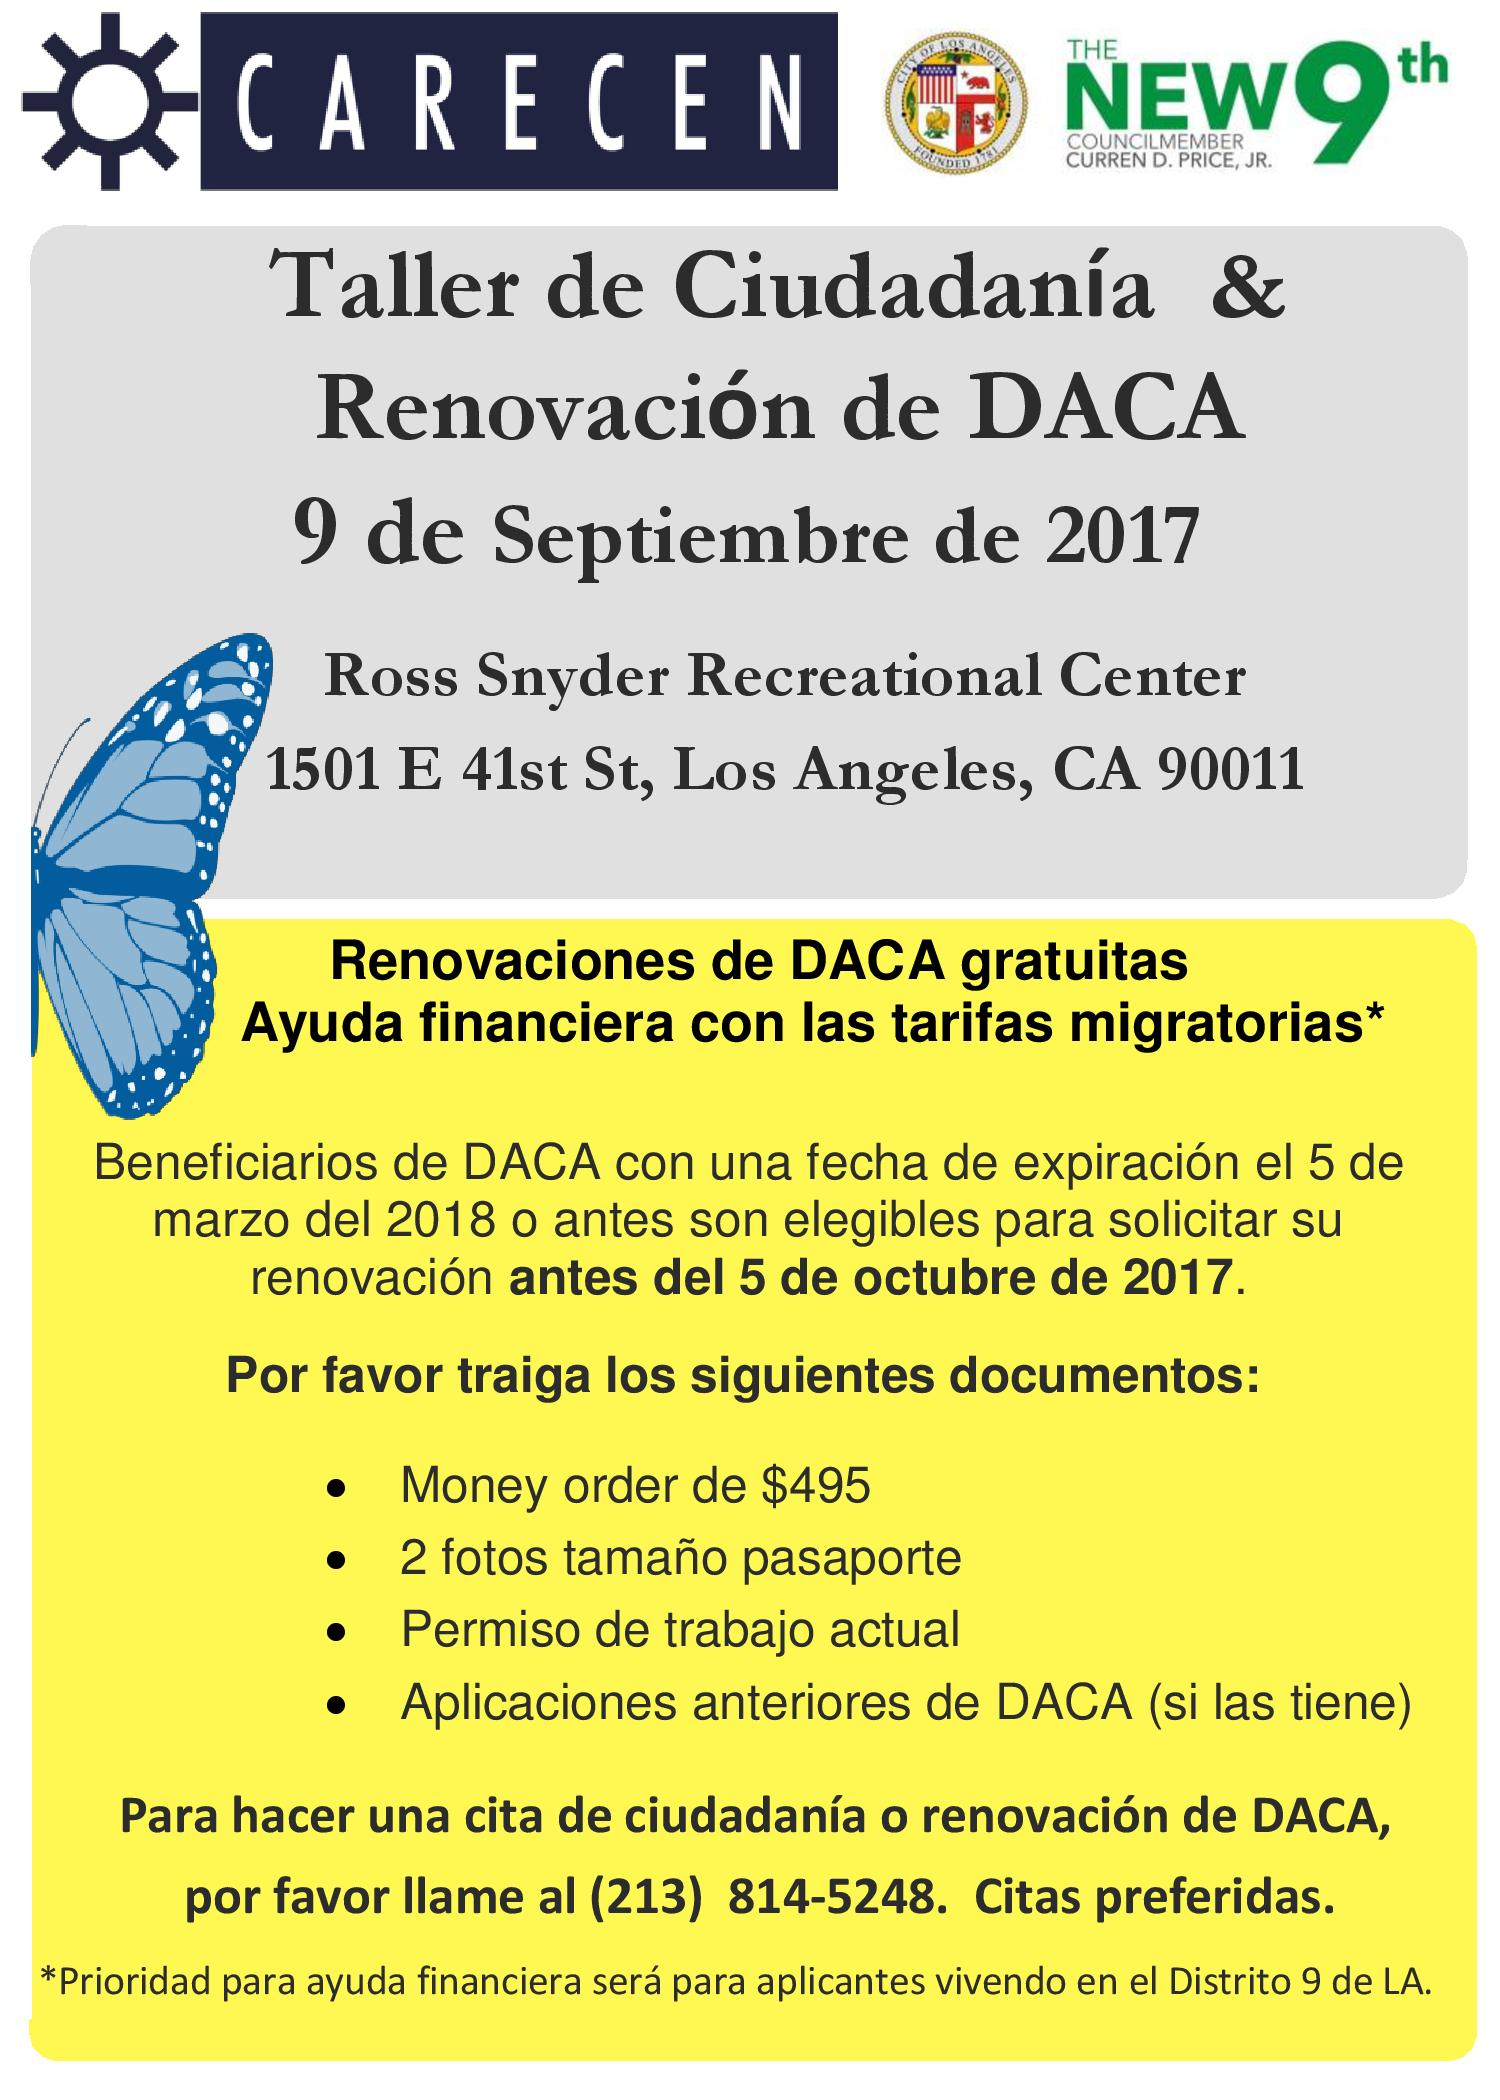 Citizenship_and_DACA_Renewal_Workshop_ENG_and_SPA-page-002.jpg